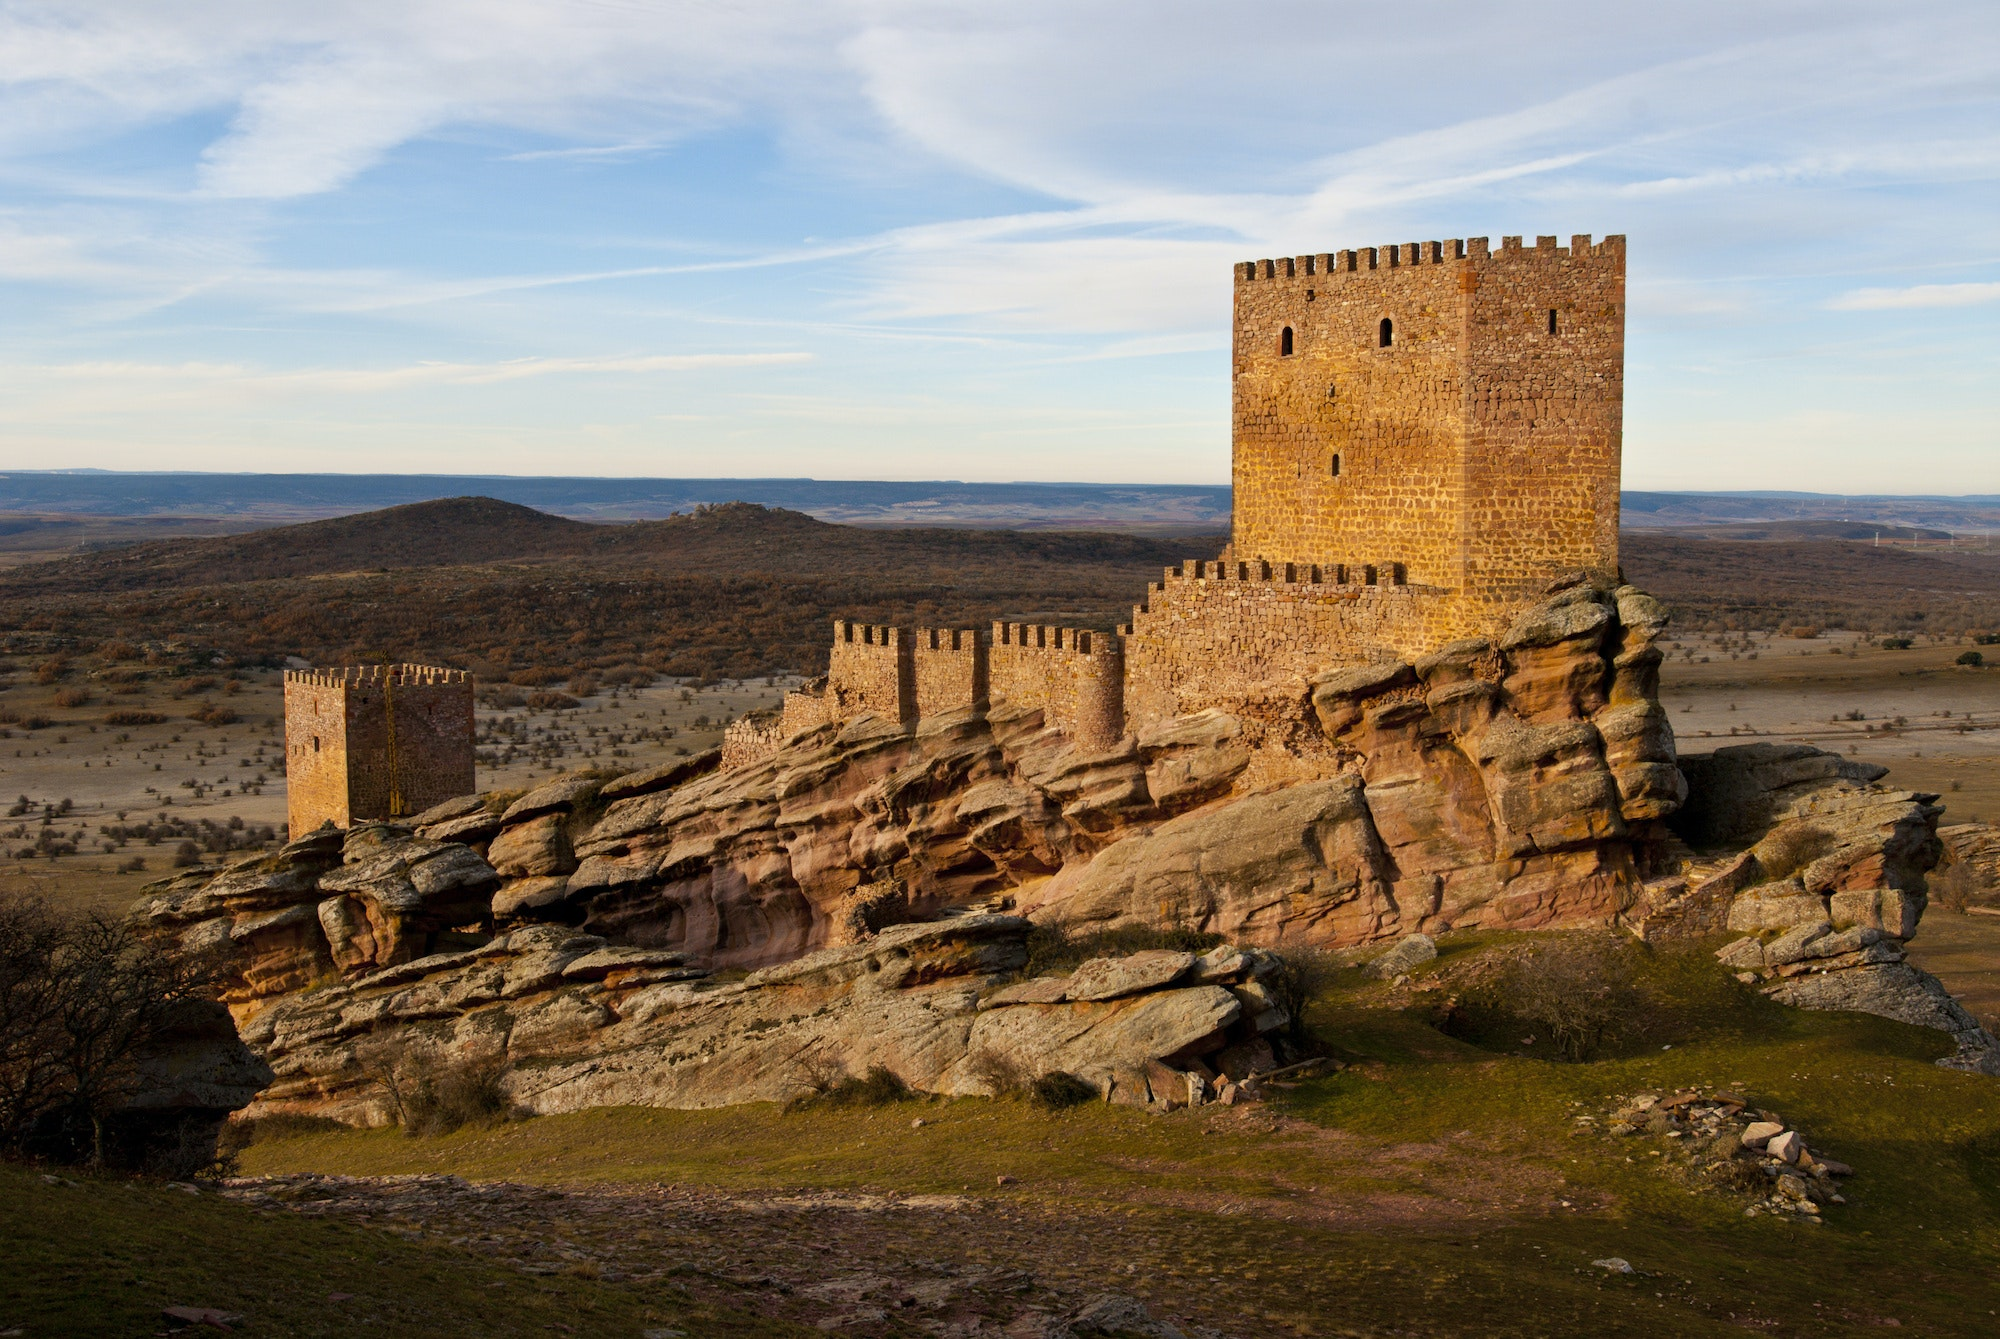 The Castle of Zafra sits at an altitude of 4,600 feet in Spain's Sierra de Caldereros.